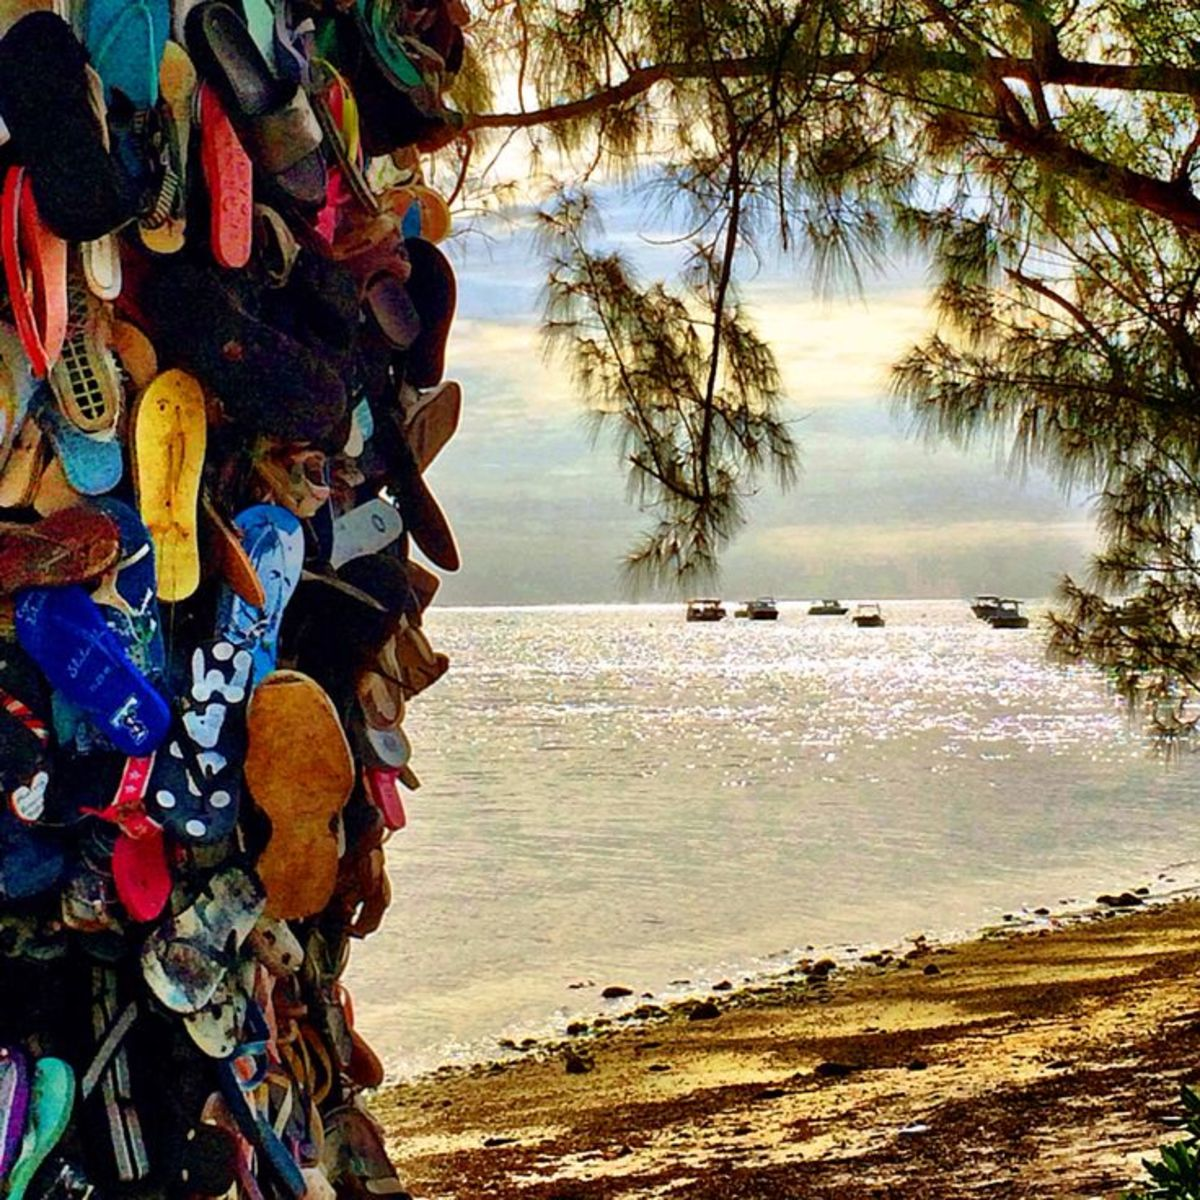 It started with just one flip-flop. but now there are hundreds, joined by assorted sneakers, slippers and even flippers, nailed to a casuarina tree bordering the coastal road that runs through Grand Cayman's South Sound.